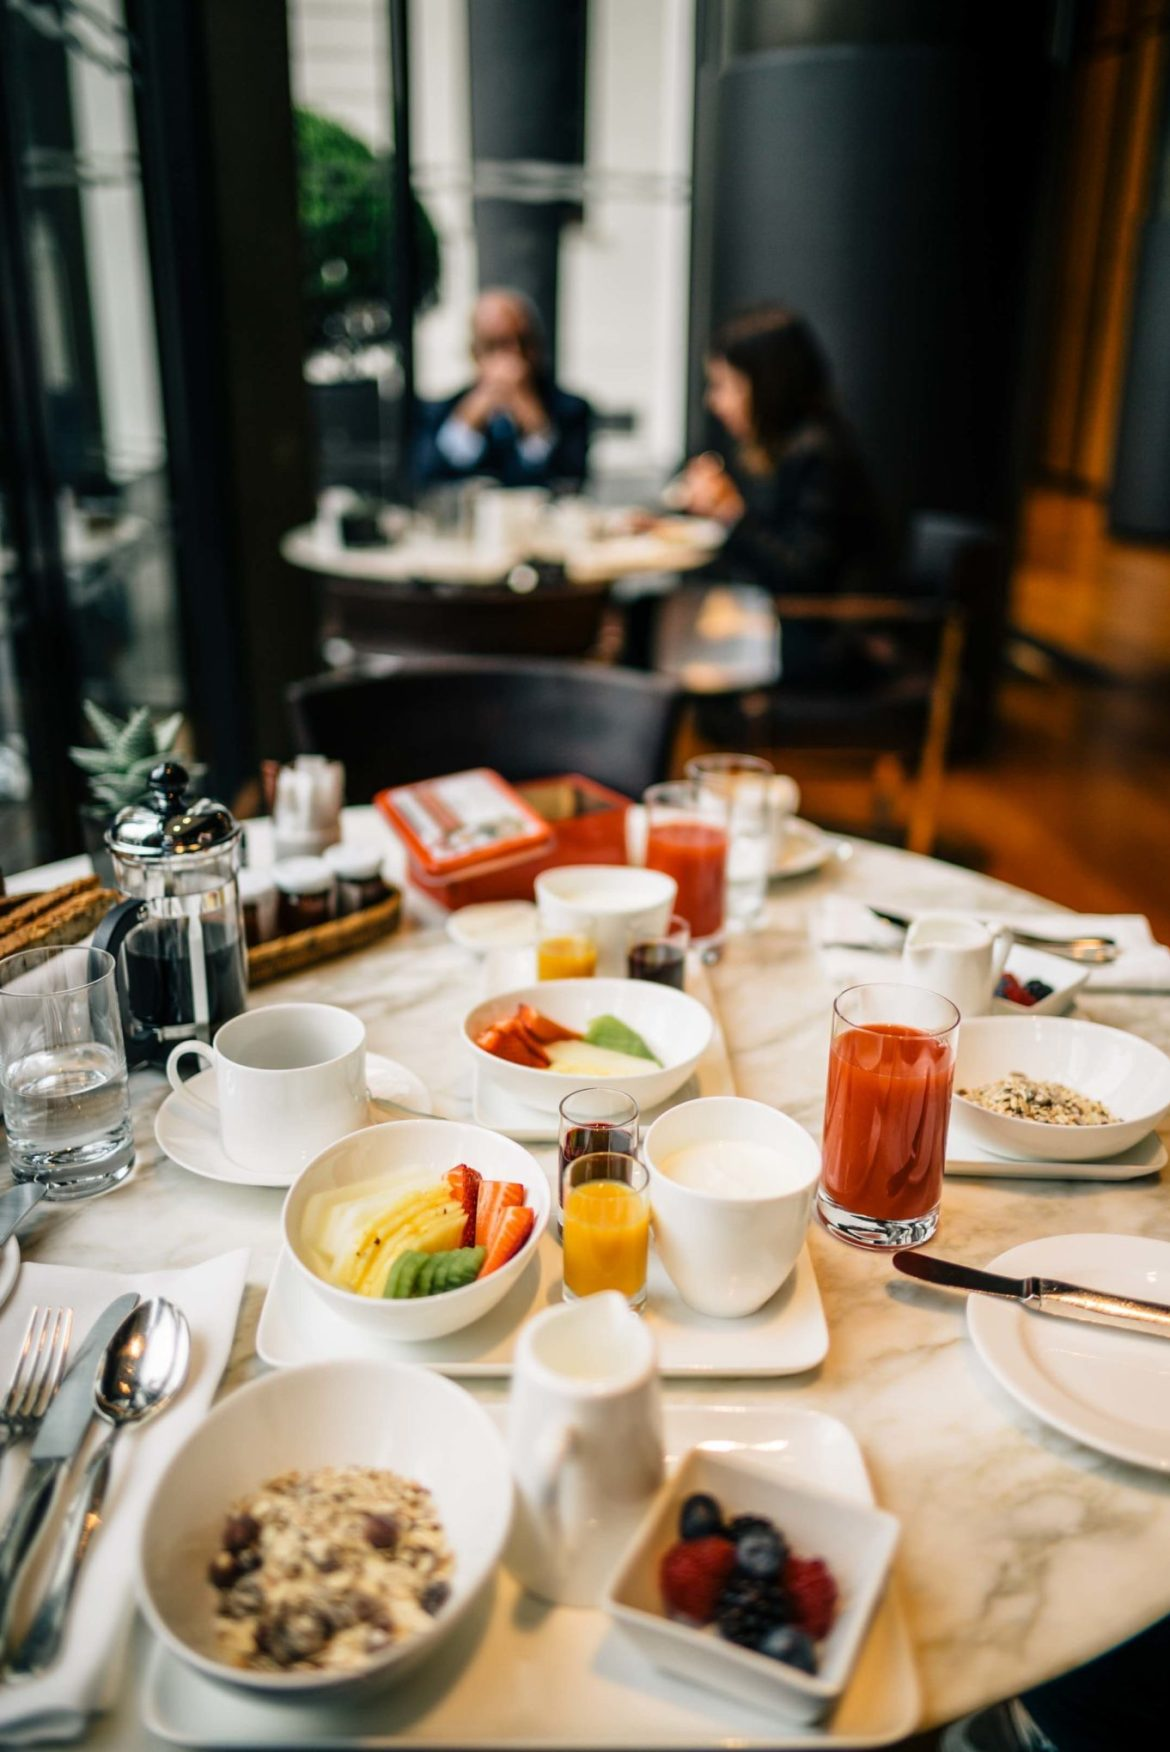 The blood orange juice was our favorite pick for fresh squeezed juice at breakfast at Hotel Bulgari Milano, The Taste Edit